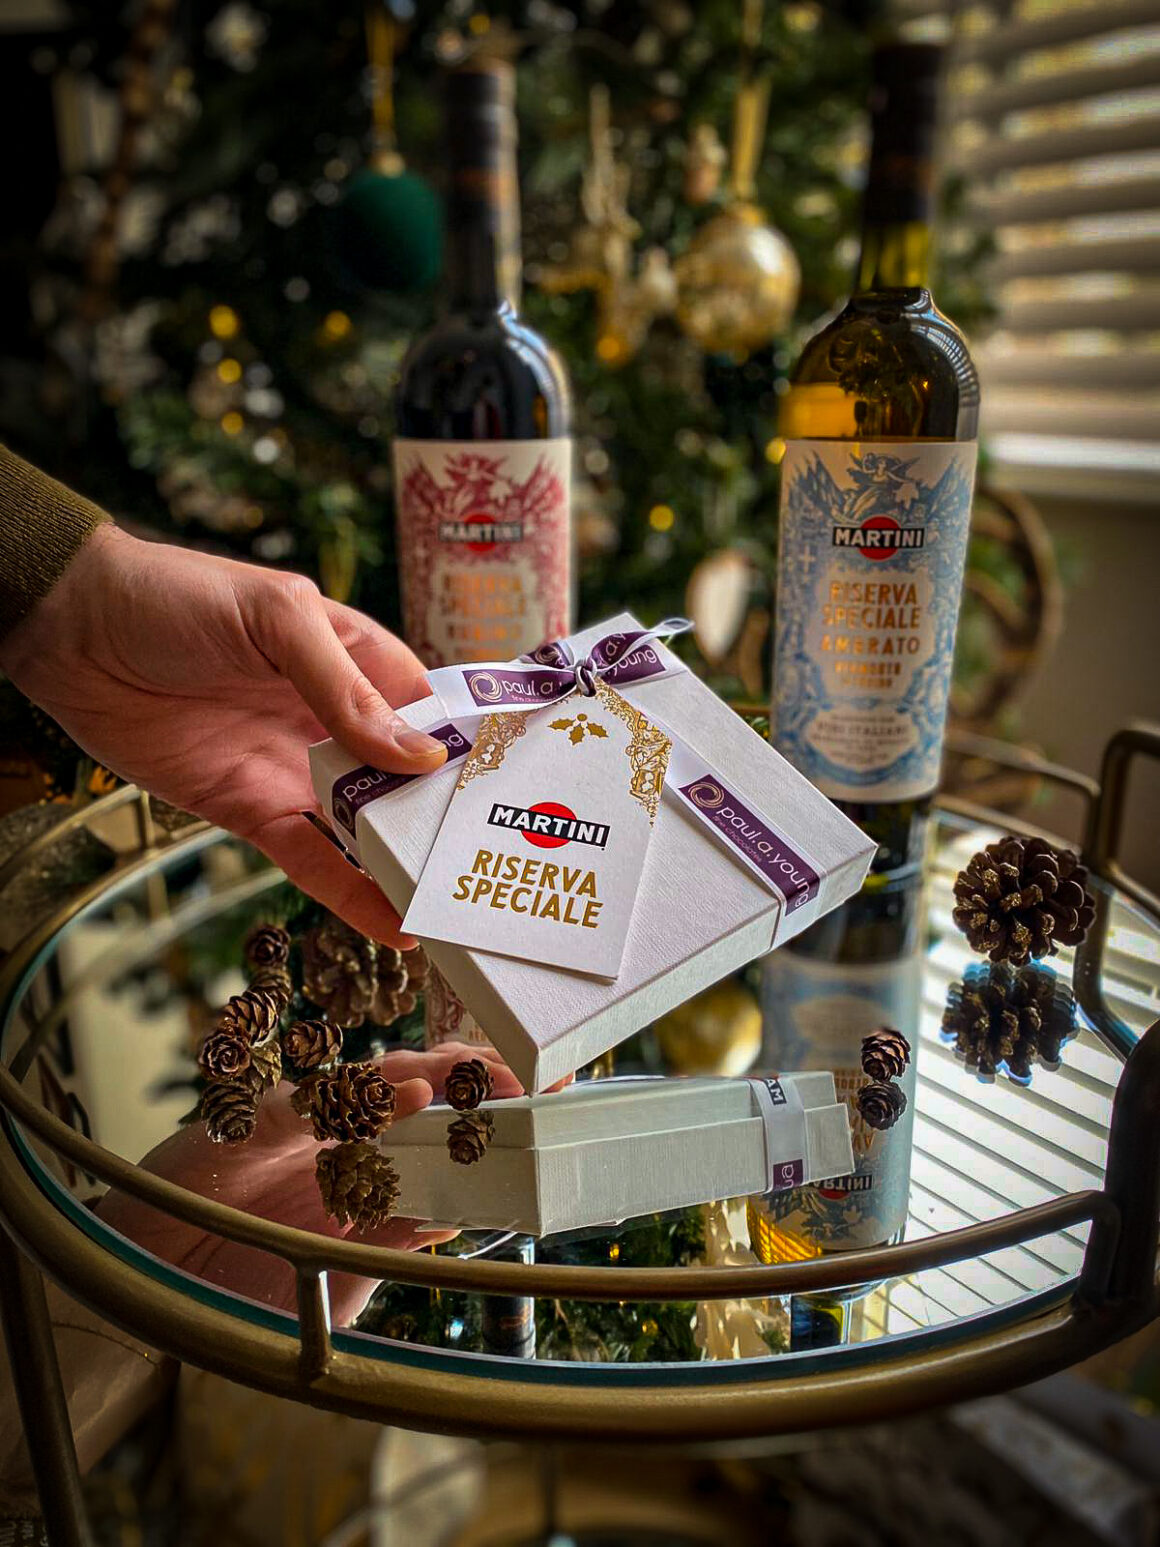 MARTINI celebrates the festive season with a Negroni chocolate collection by Paul A Young box